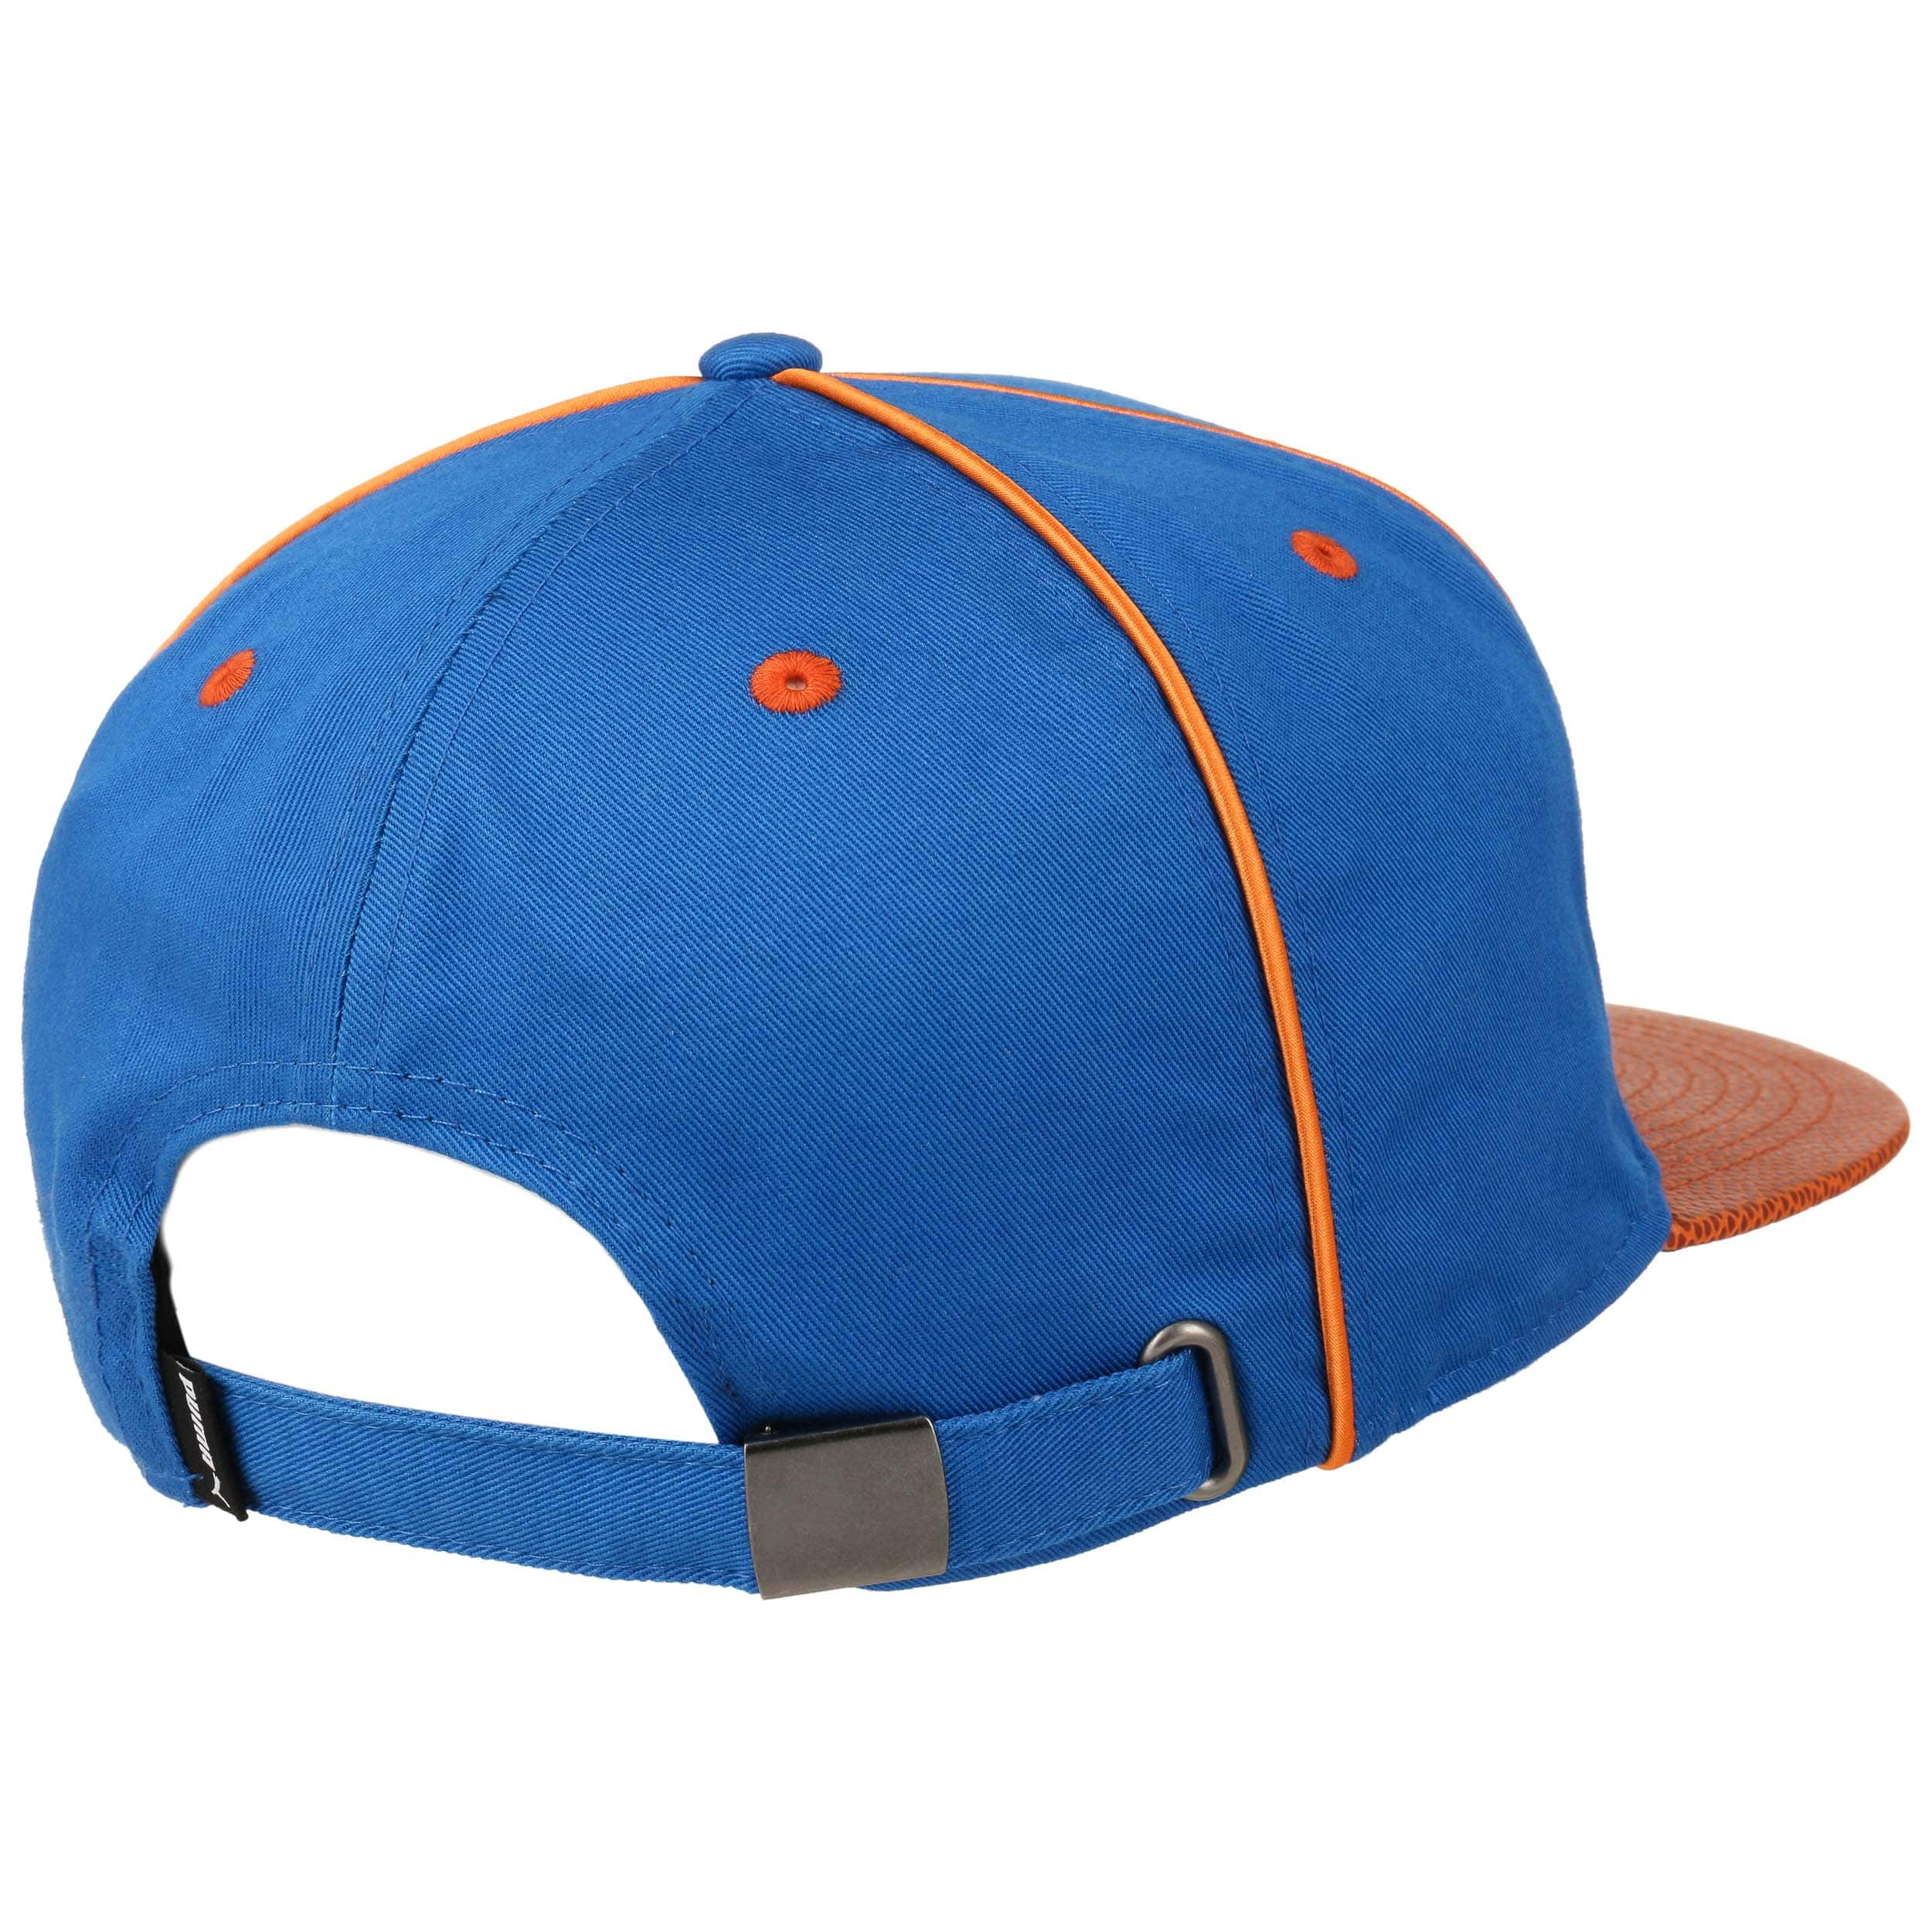 5c8dab3839a ... discount deluxe strapback cap by puma royal blue 3 94daf 89a58